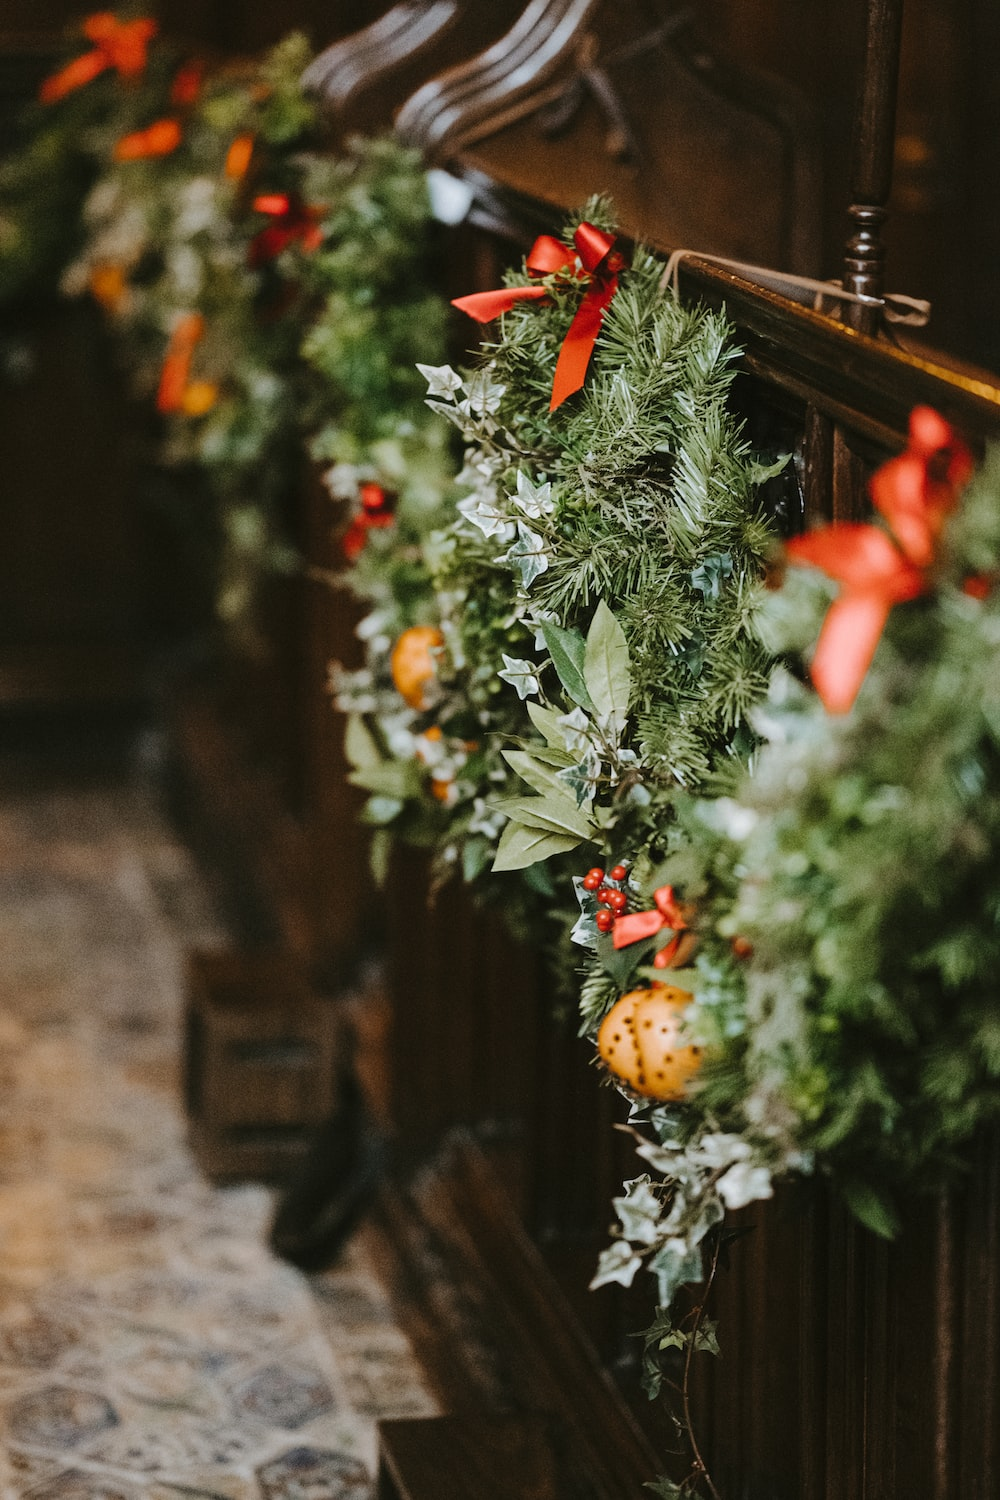 several green Christmas wreaths hanging on wall